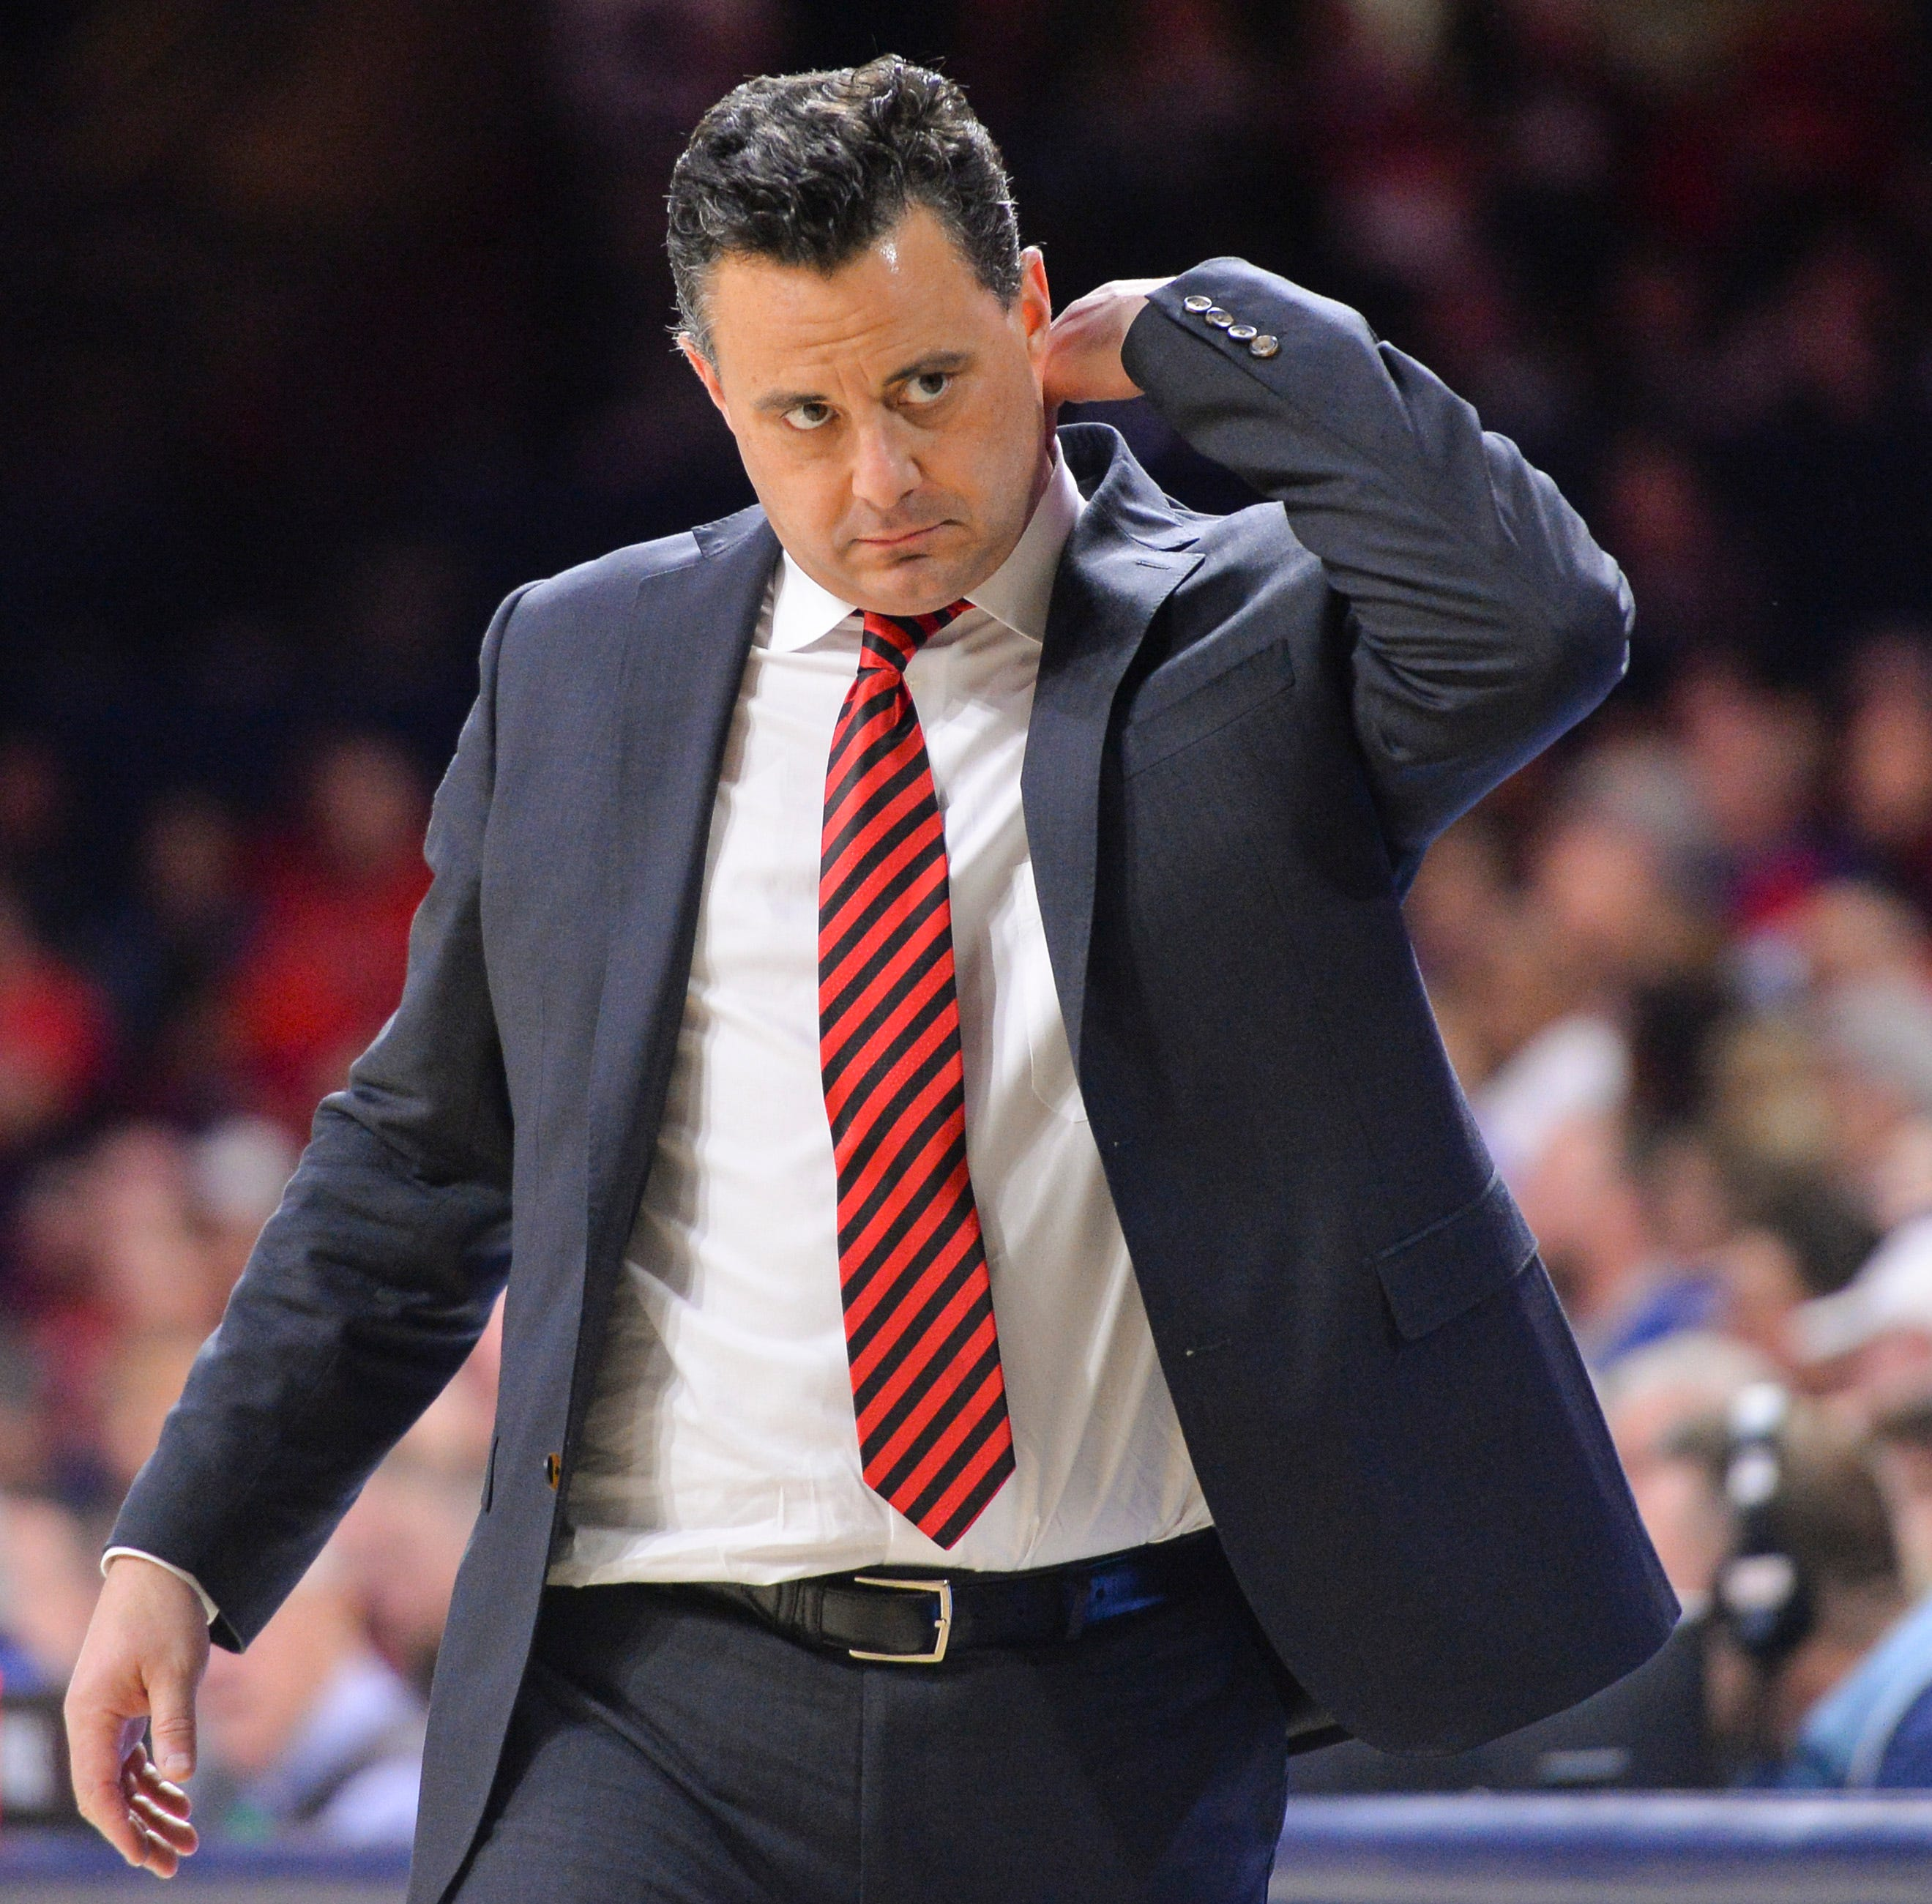 Don't expect Arizona basketball coach Sean Miller to lose job